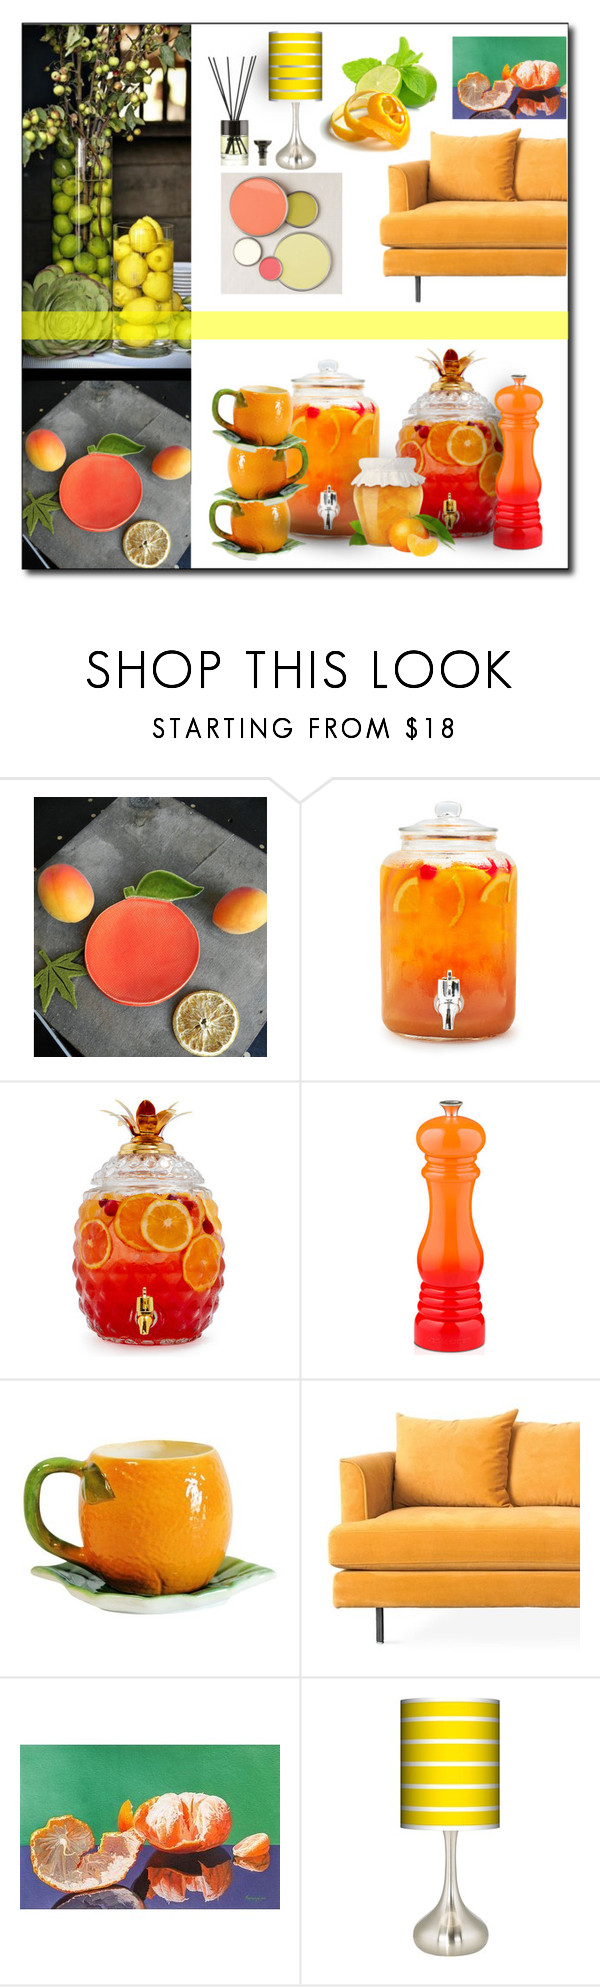 """""""citrus home"""" by art-gives-me-life ❤ liked on Polyvore featuring interior, interiors, interior design, home, home decor, interior decorating, Sur La Table, Le Creuset, Gus* Modern and NOVICA"""